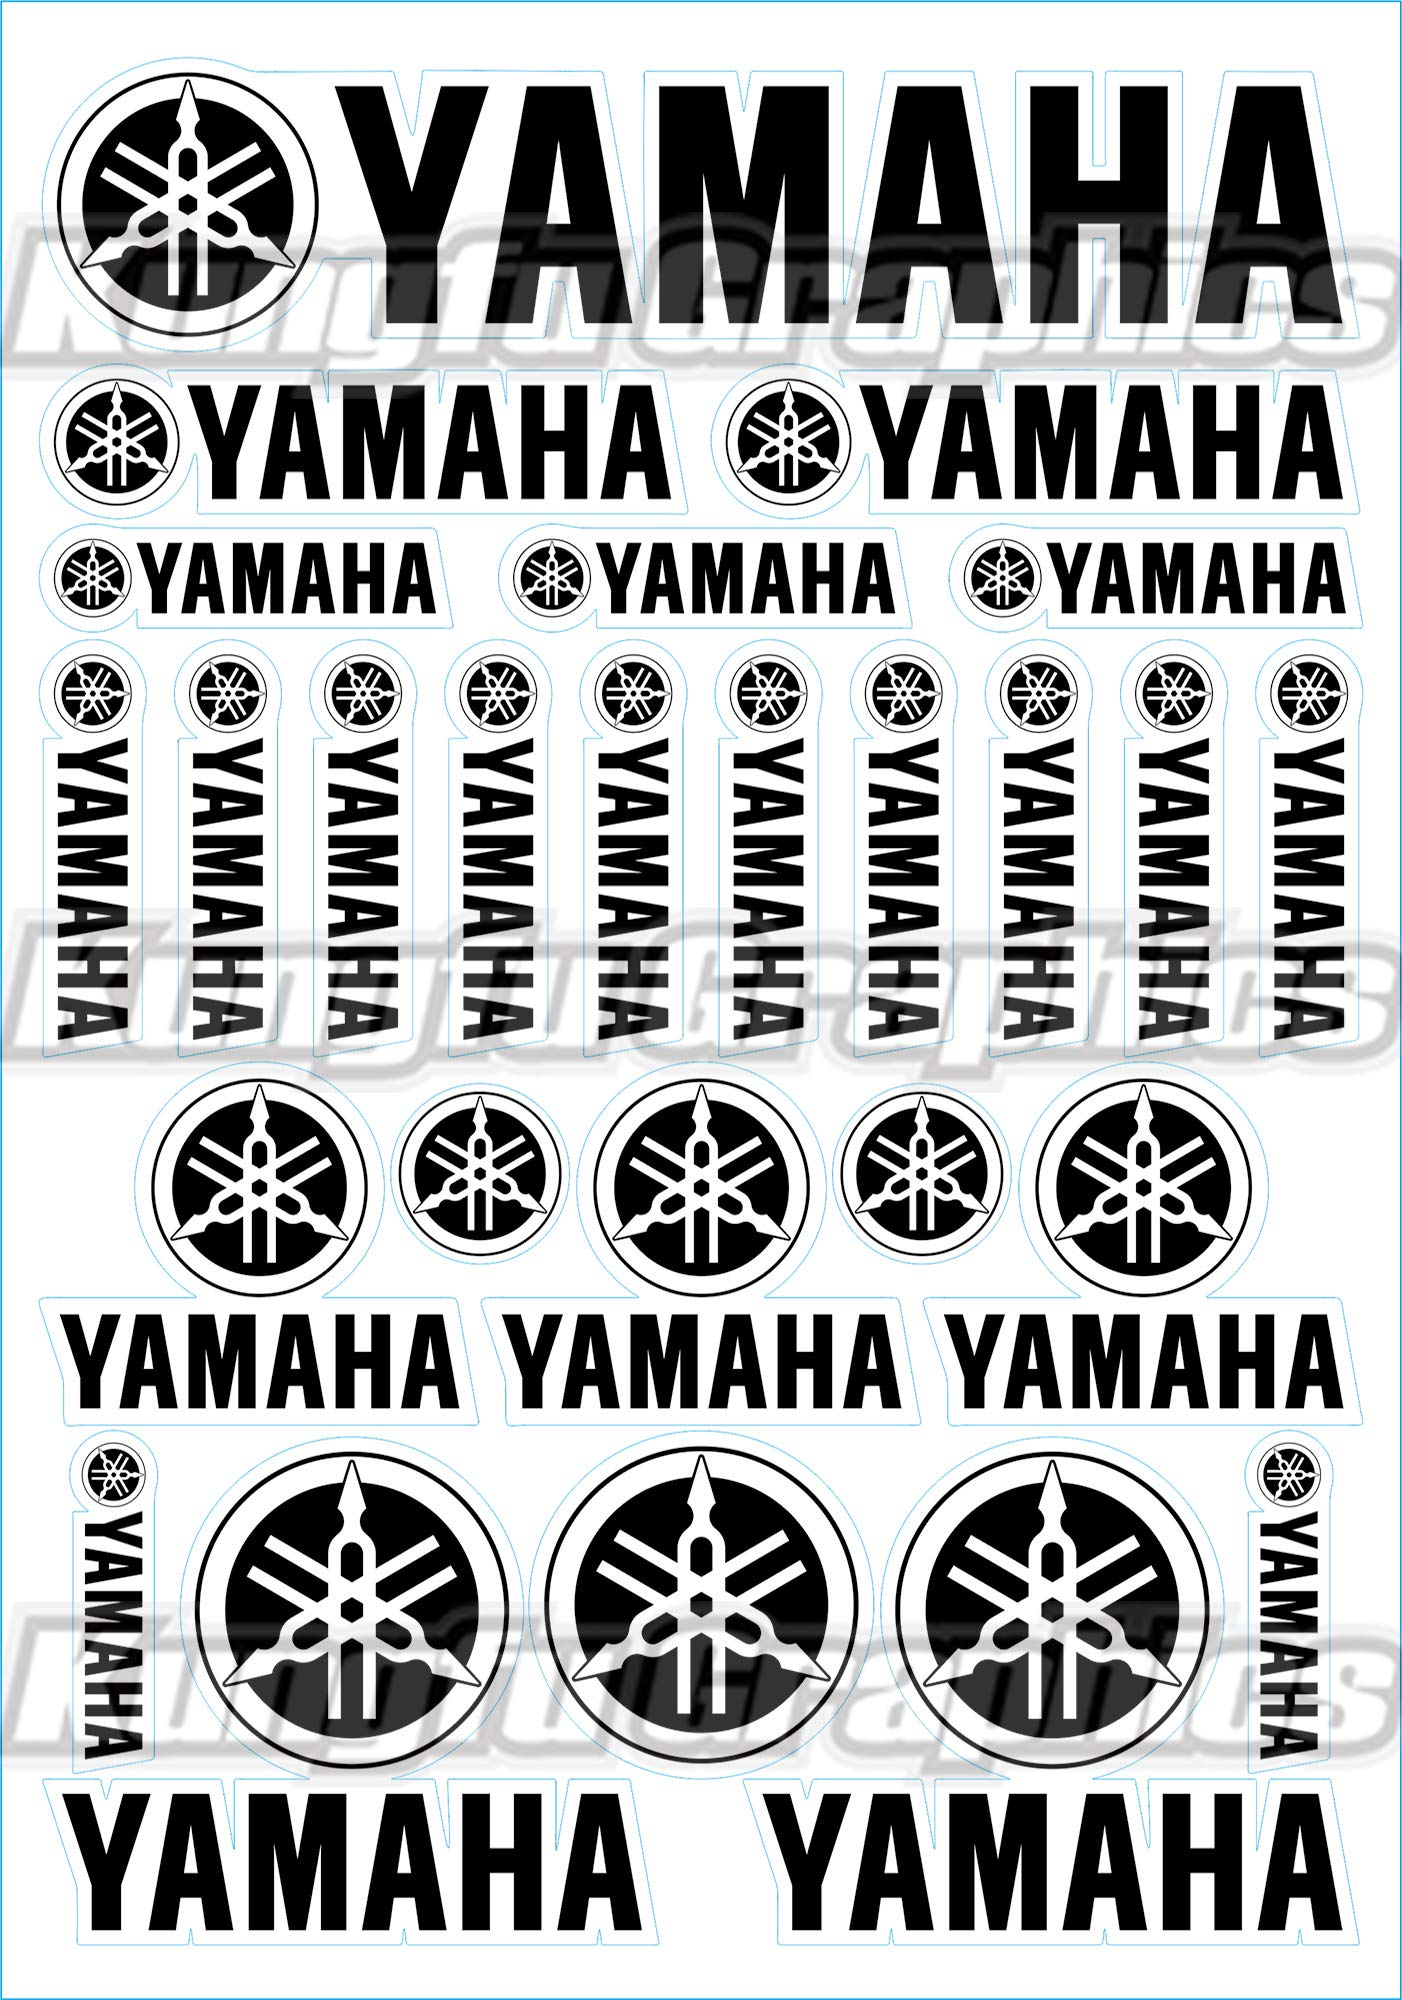 Kungfu Graphics YAMAHA Sponsor Logo Racing Sticker Sheet Universal (7.2 x 10.2 inch),Black